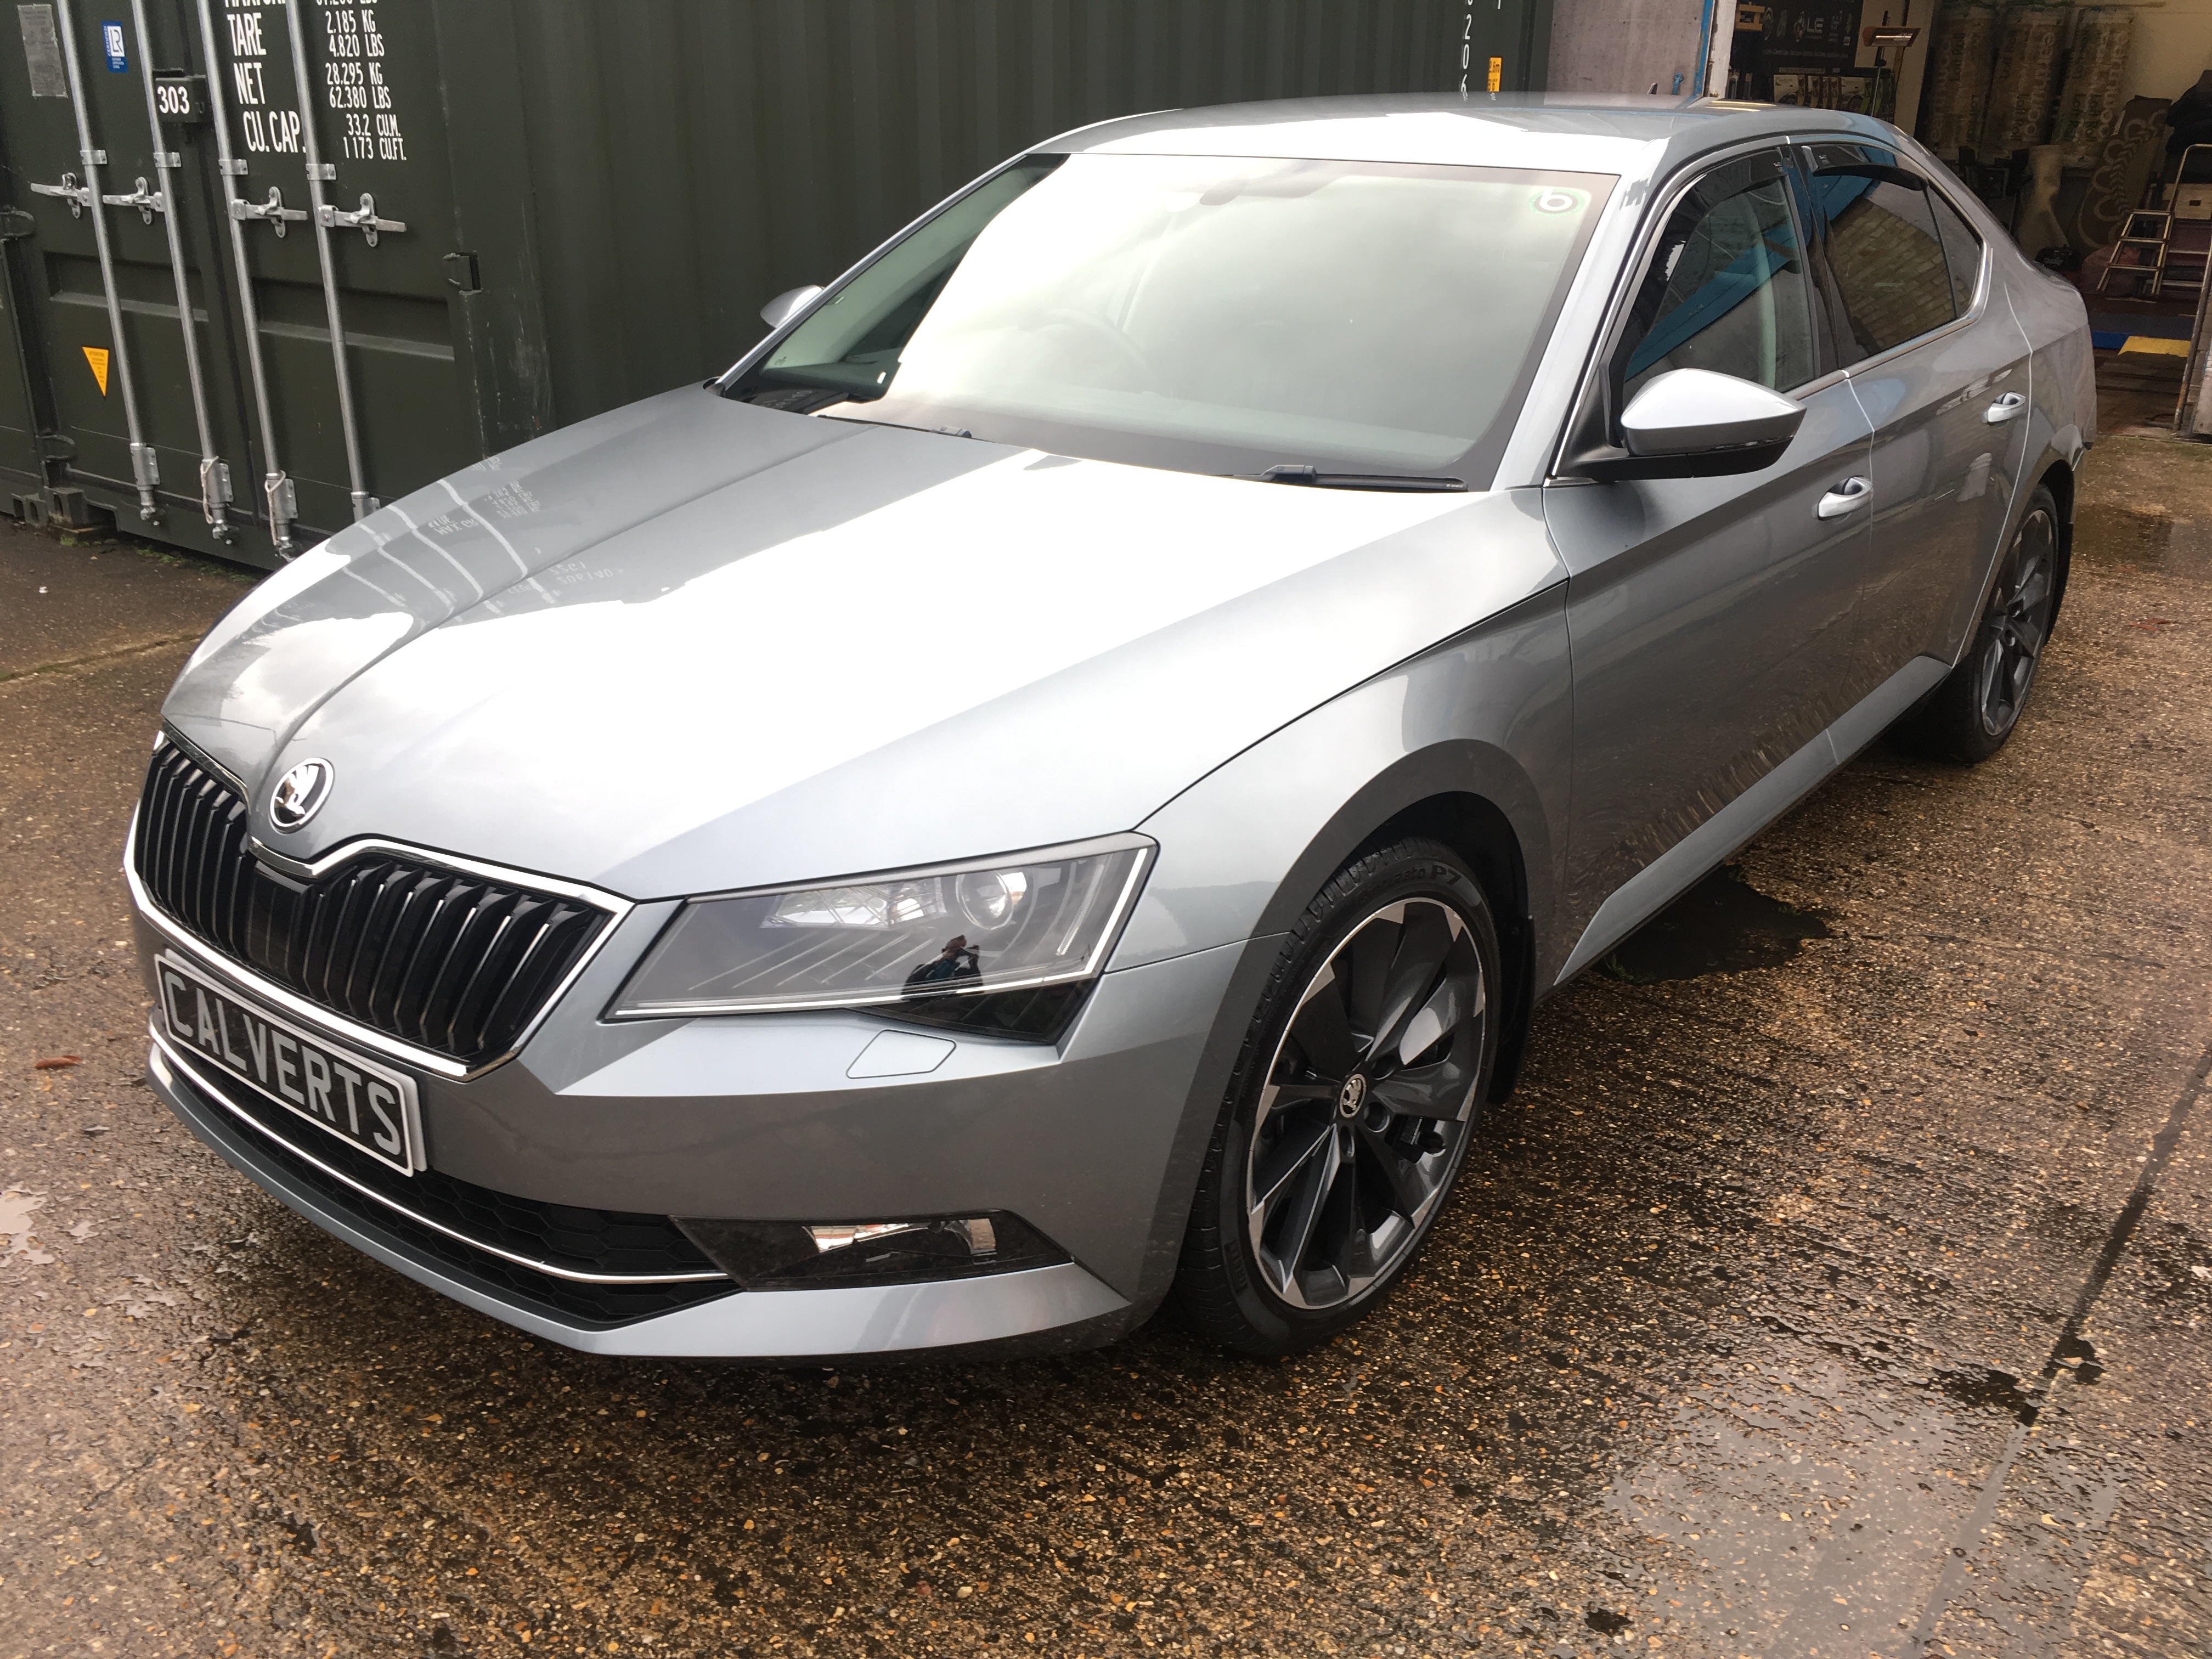 Skoda Octavia Winter Protection